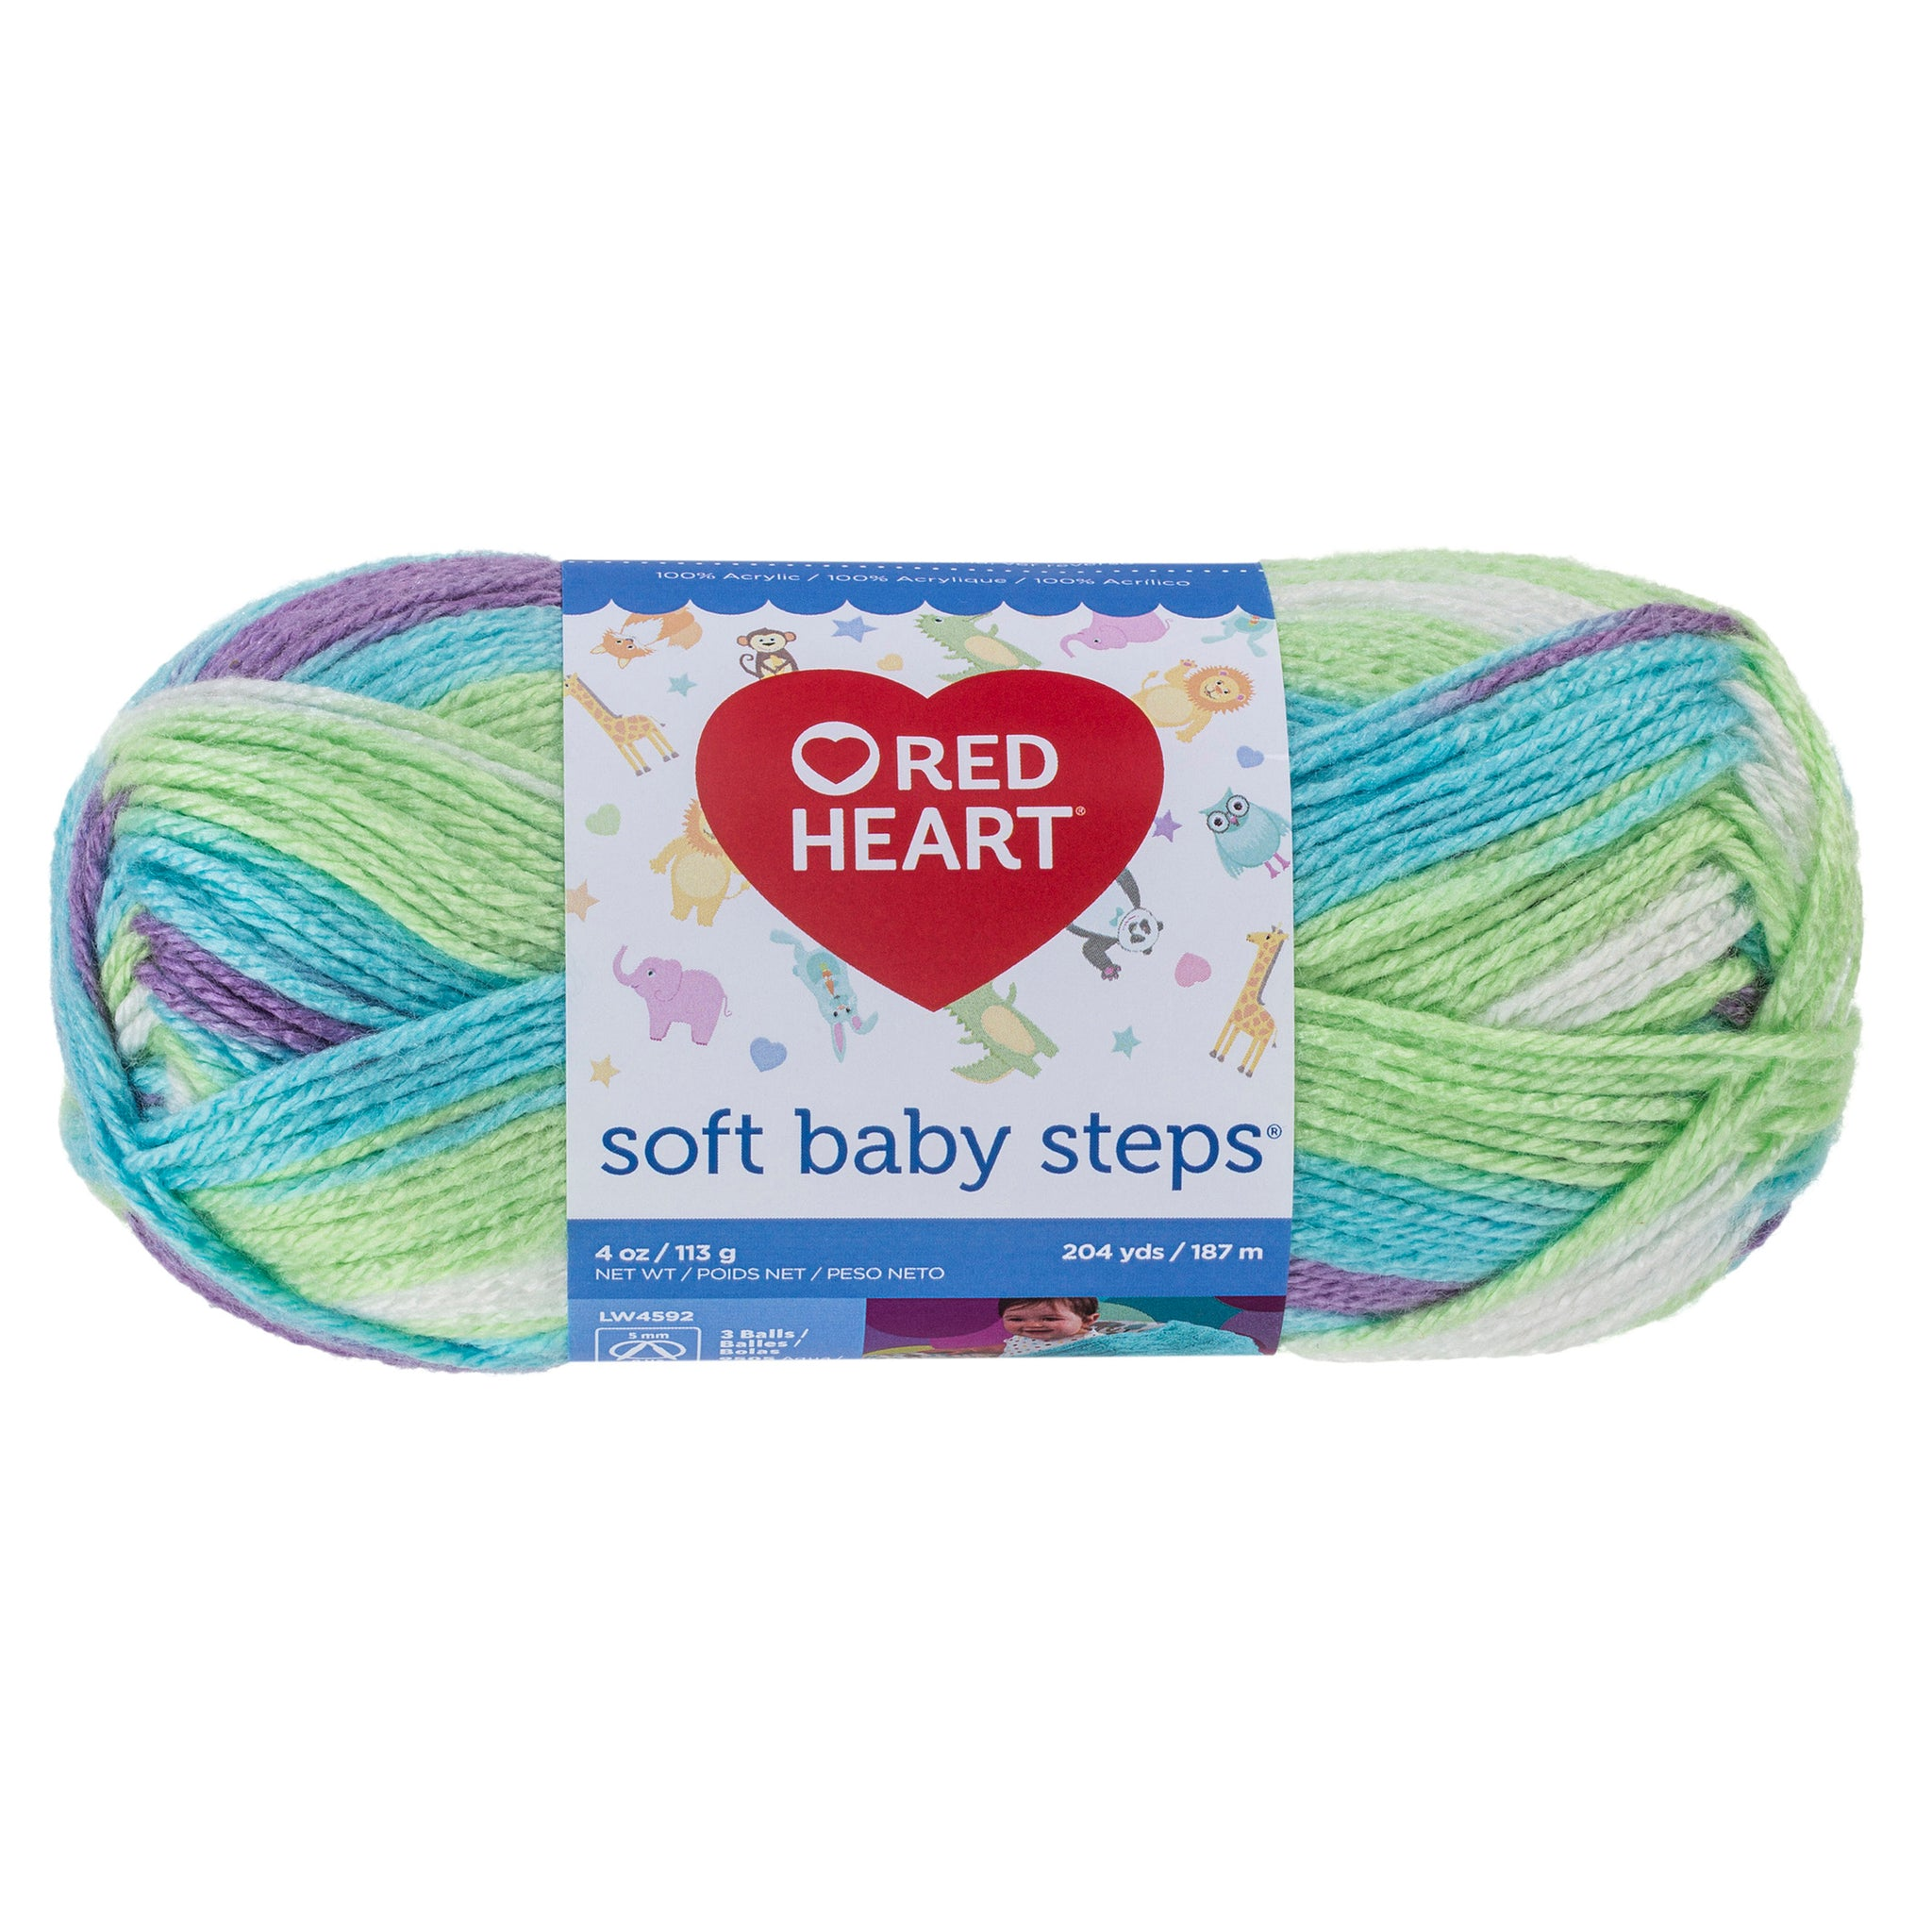 Red Heart Soft Baby Steps Yarn Good S Store Online